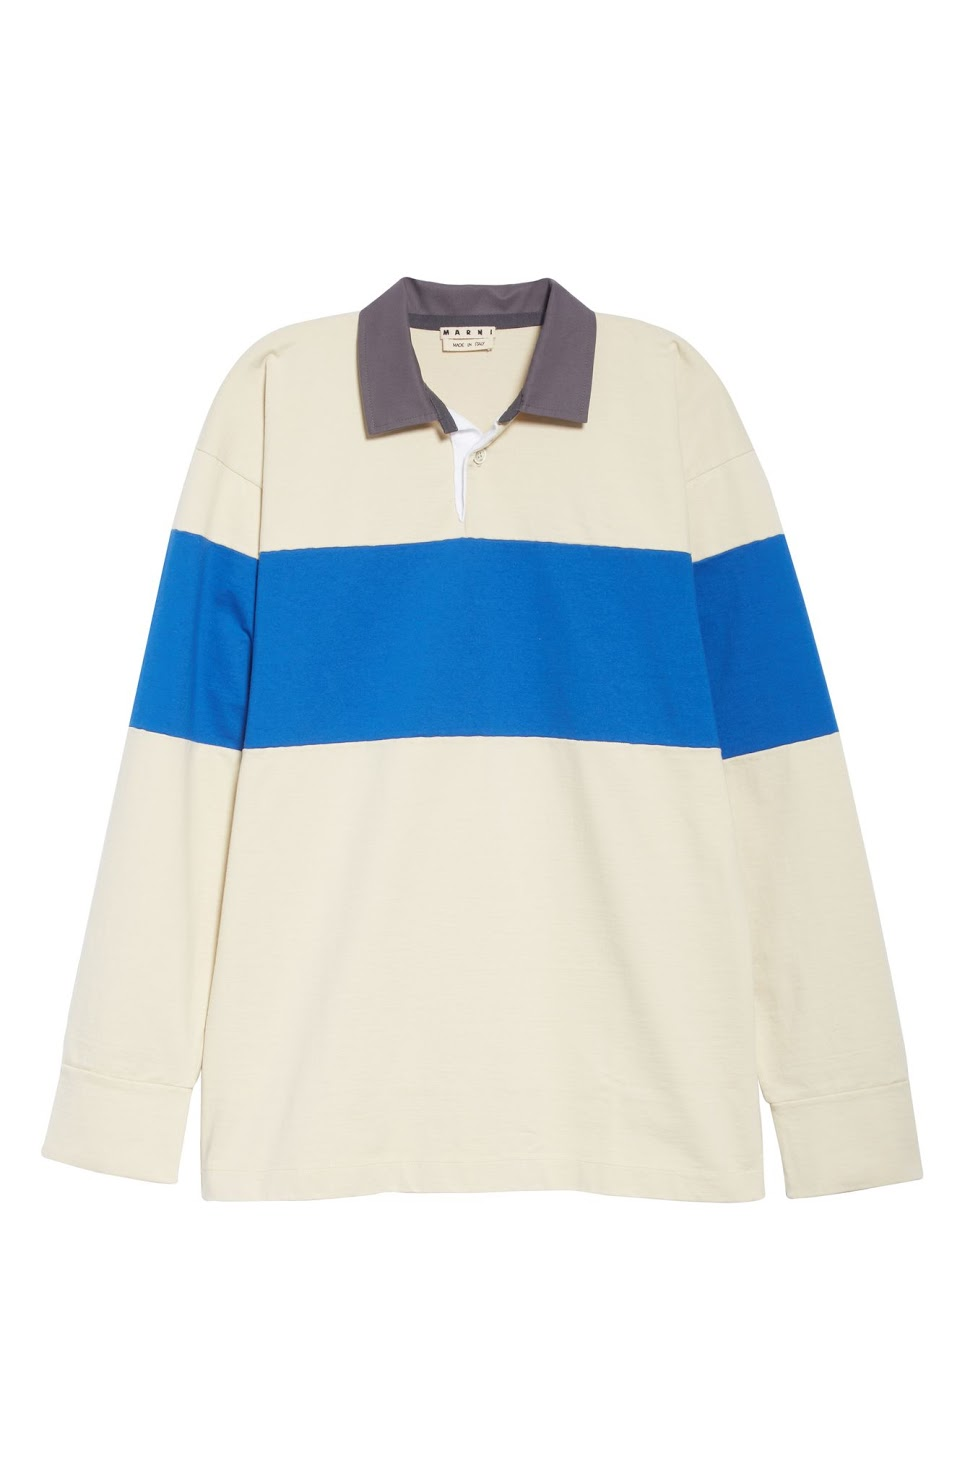 Marni_LS Rugby_Off White_$550.jpeg